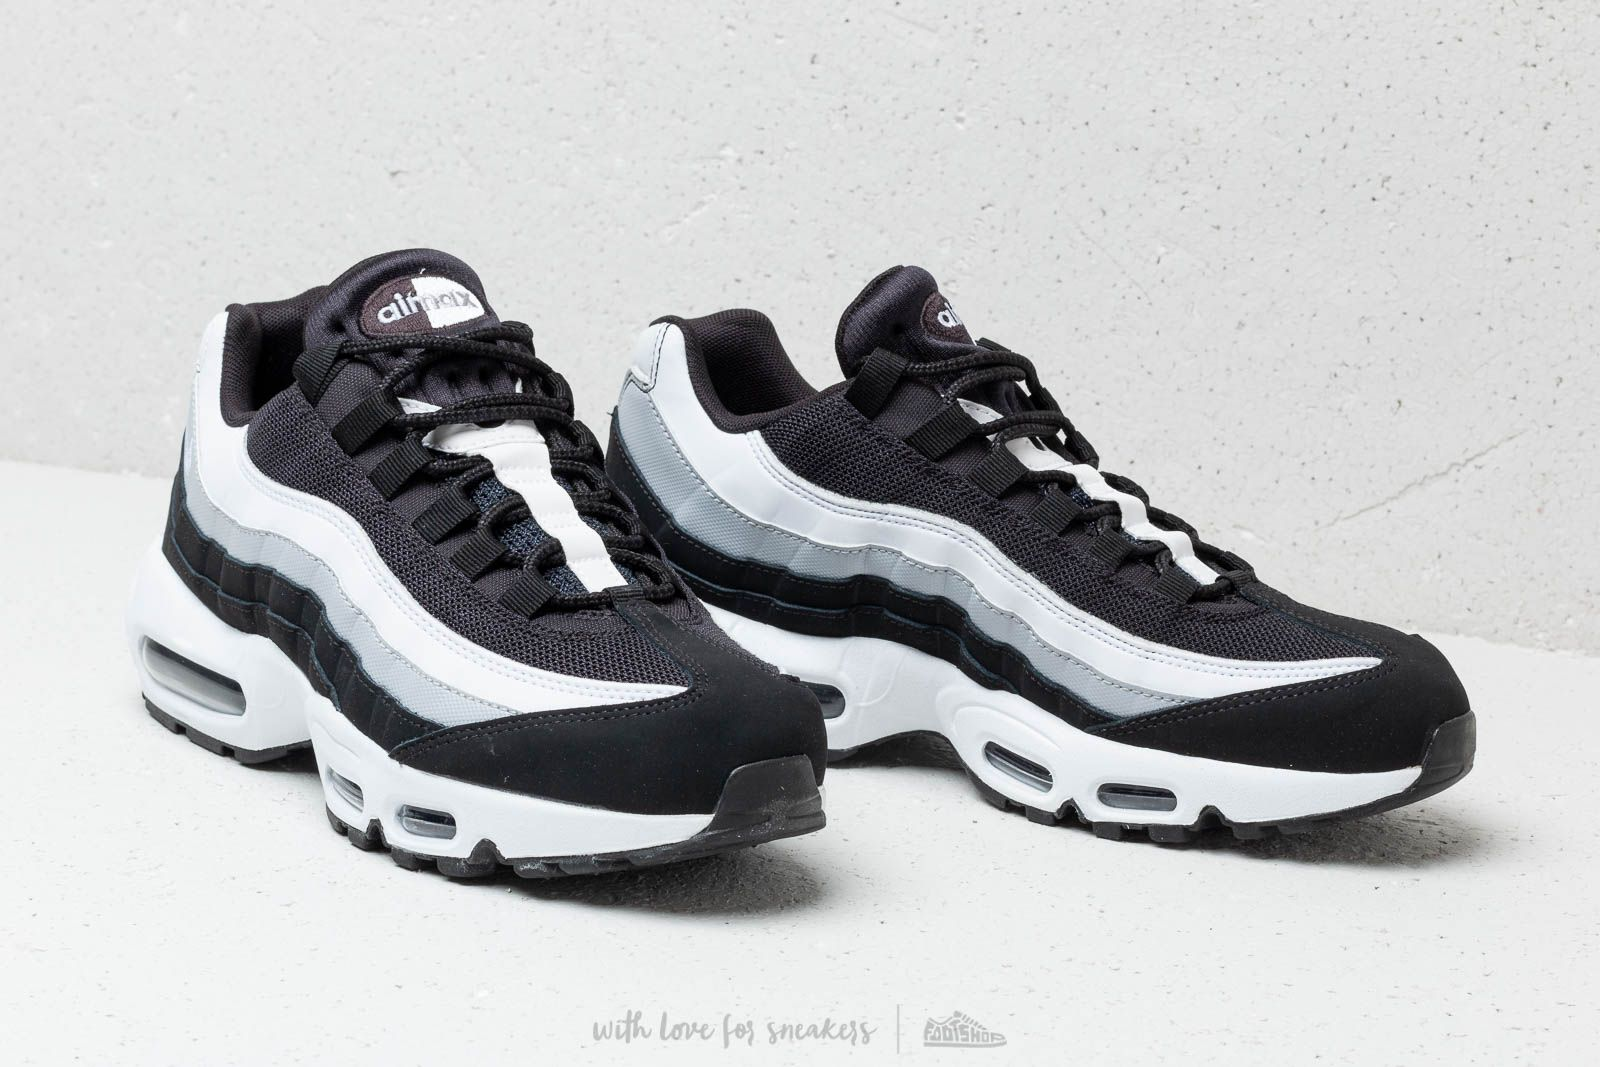 quality design a208d 1e071 ... reduced nike air max 95 essential black white wolf grey at a great  price 158 7ee15 ...